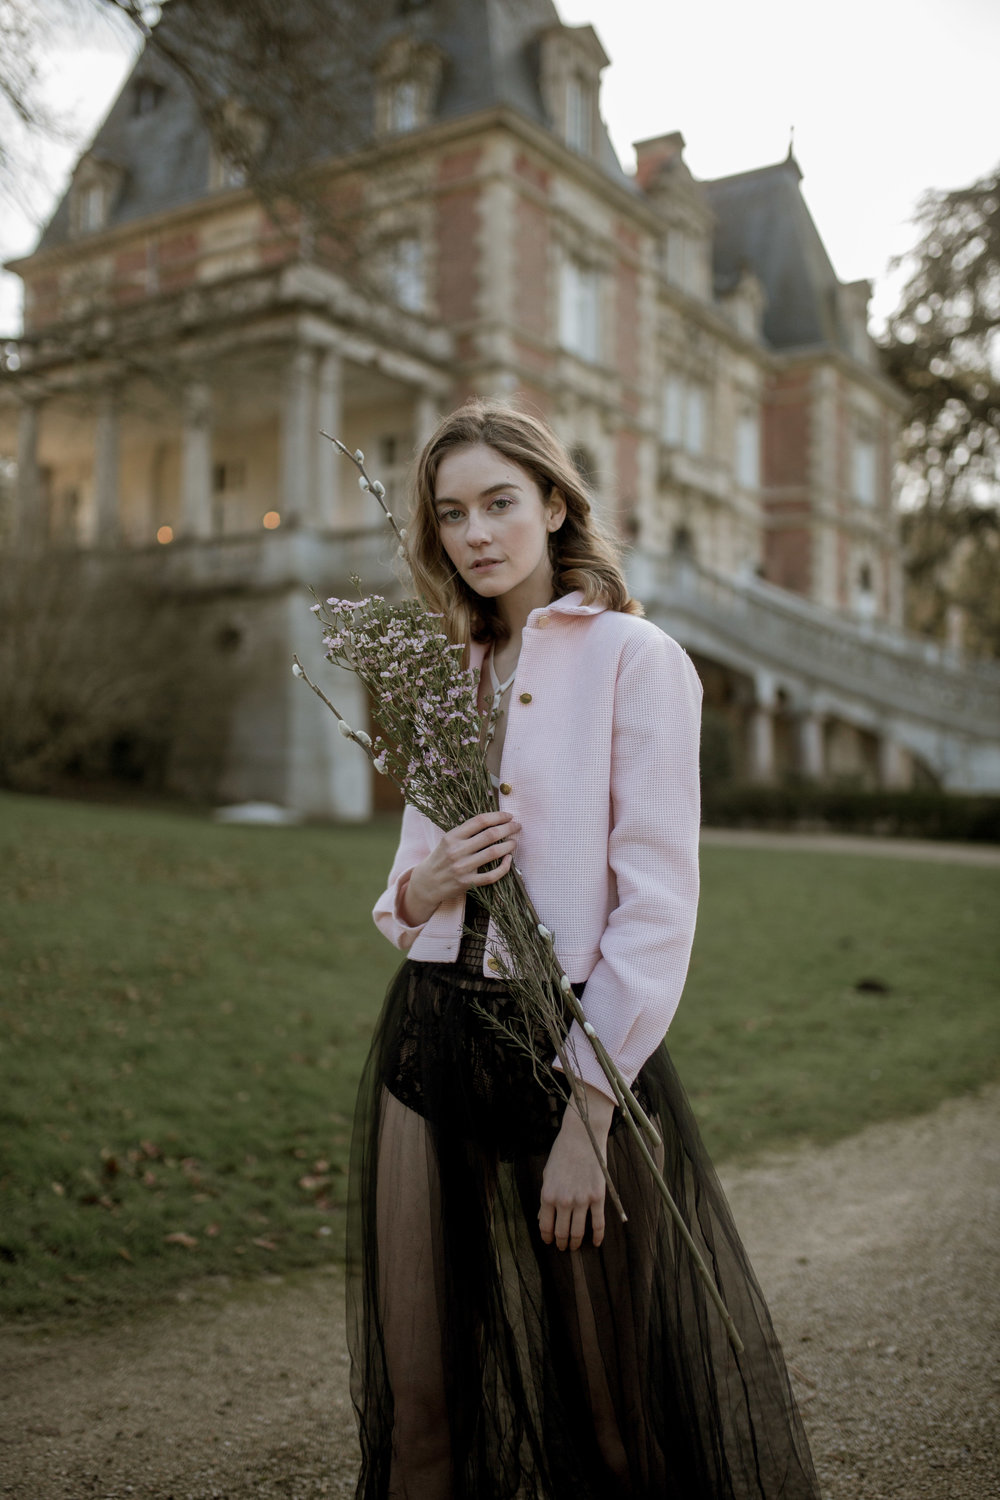 Chateau Bouffemont Fashion Editorial Photography by Charlotte Bergan